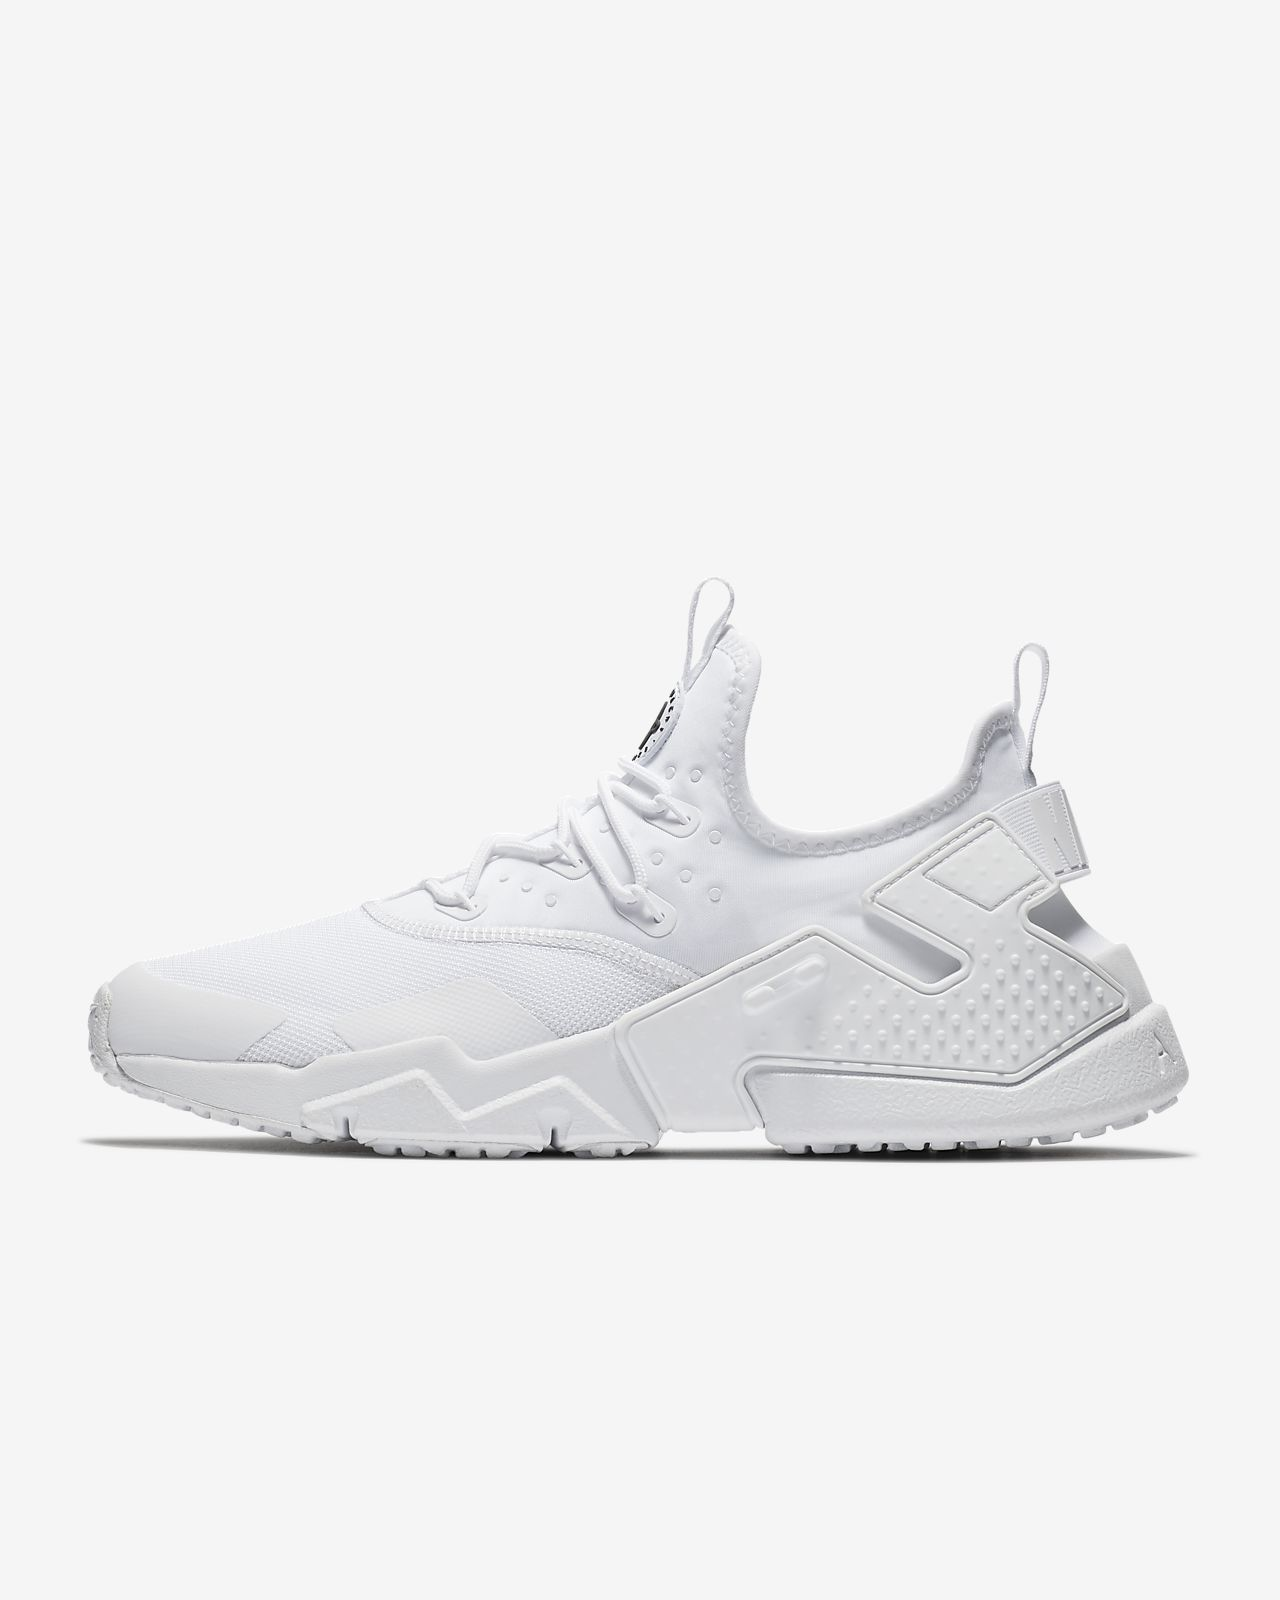 a4946ce4108c Nike Air Huarache Drift Men s Shoe. Nike.com